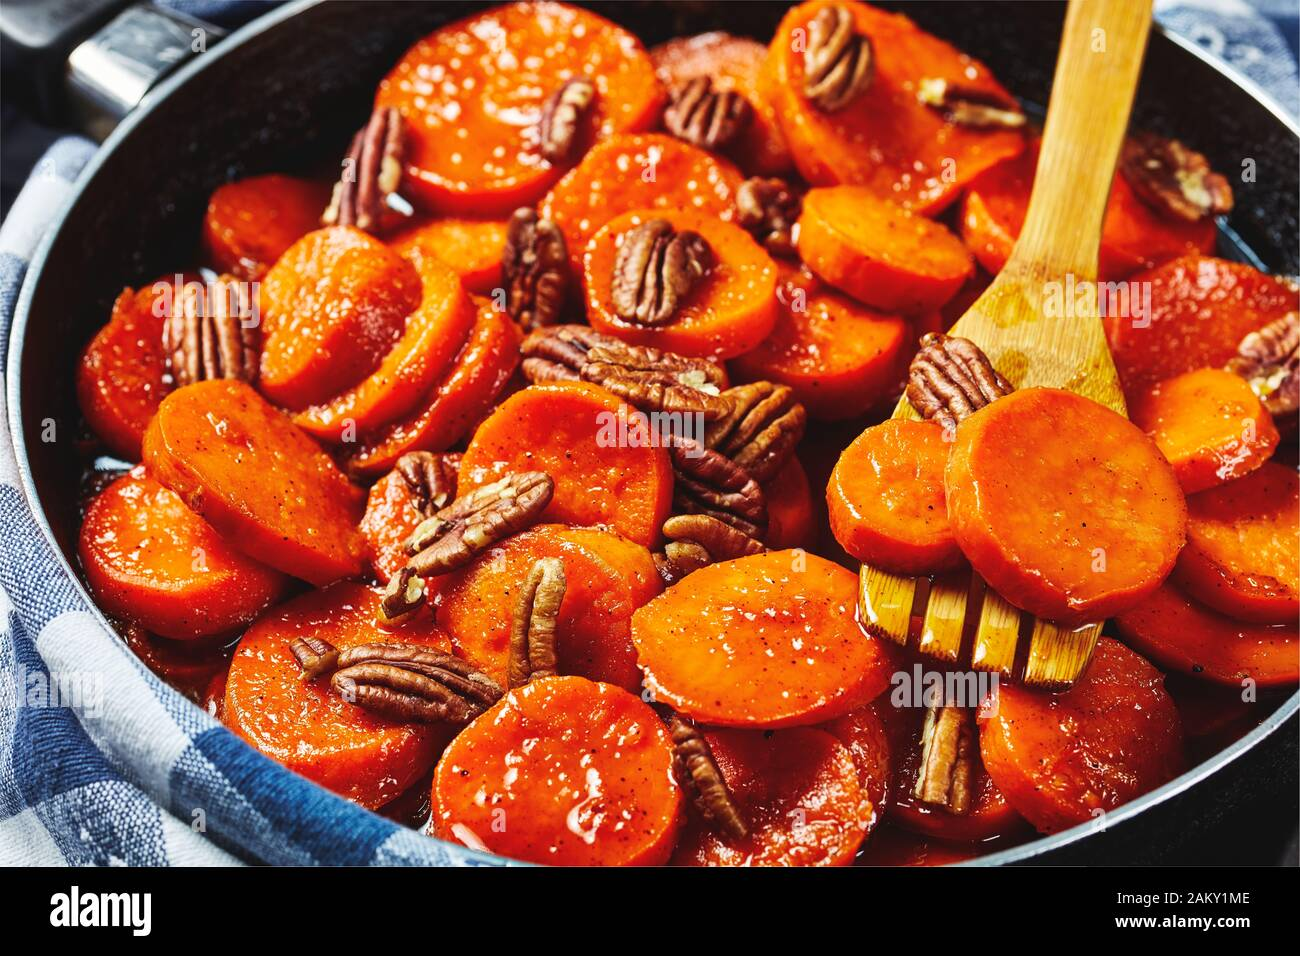 Candied sweet potatoes with brown sugar, maple syrup, orange juice and pecan nuts in a skillet with wooden spatula, view from above, close-up, macro Stock Photo